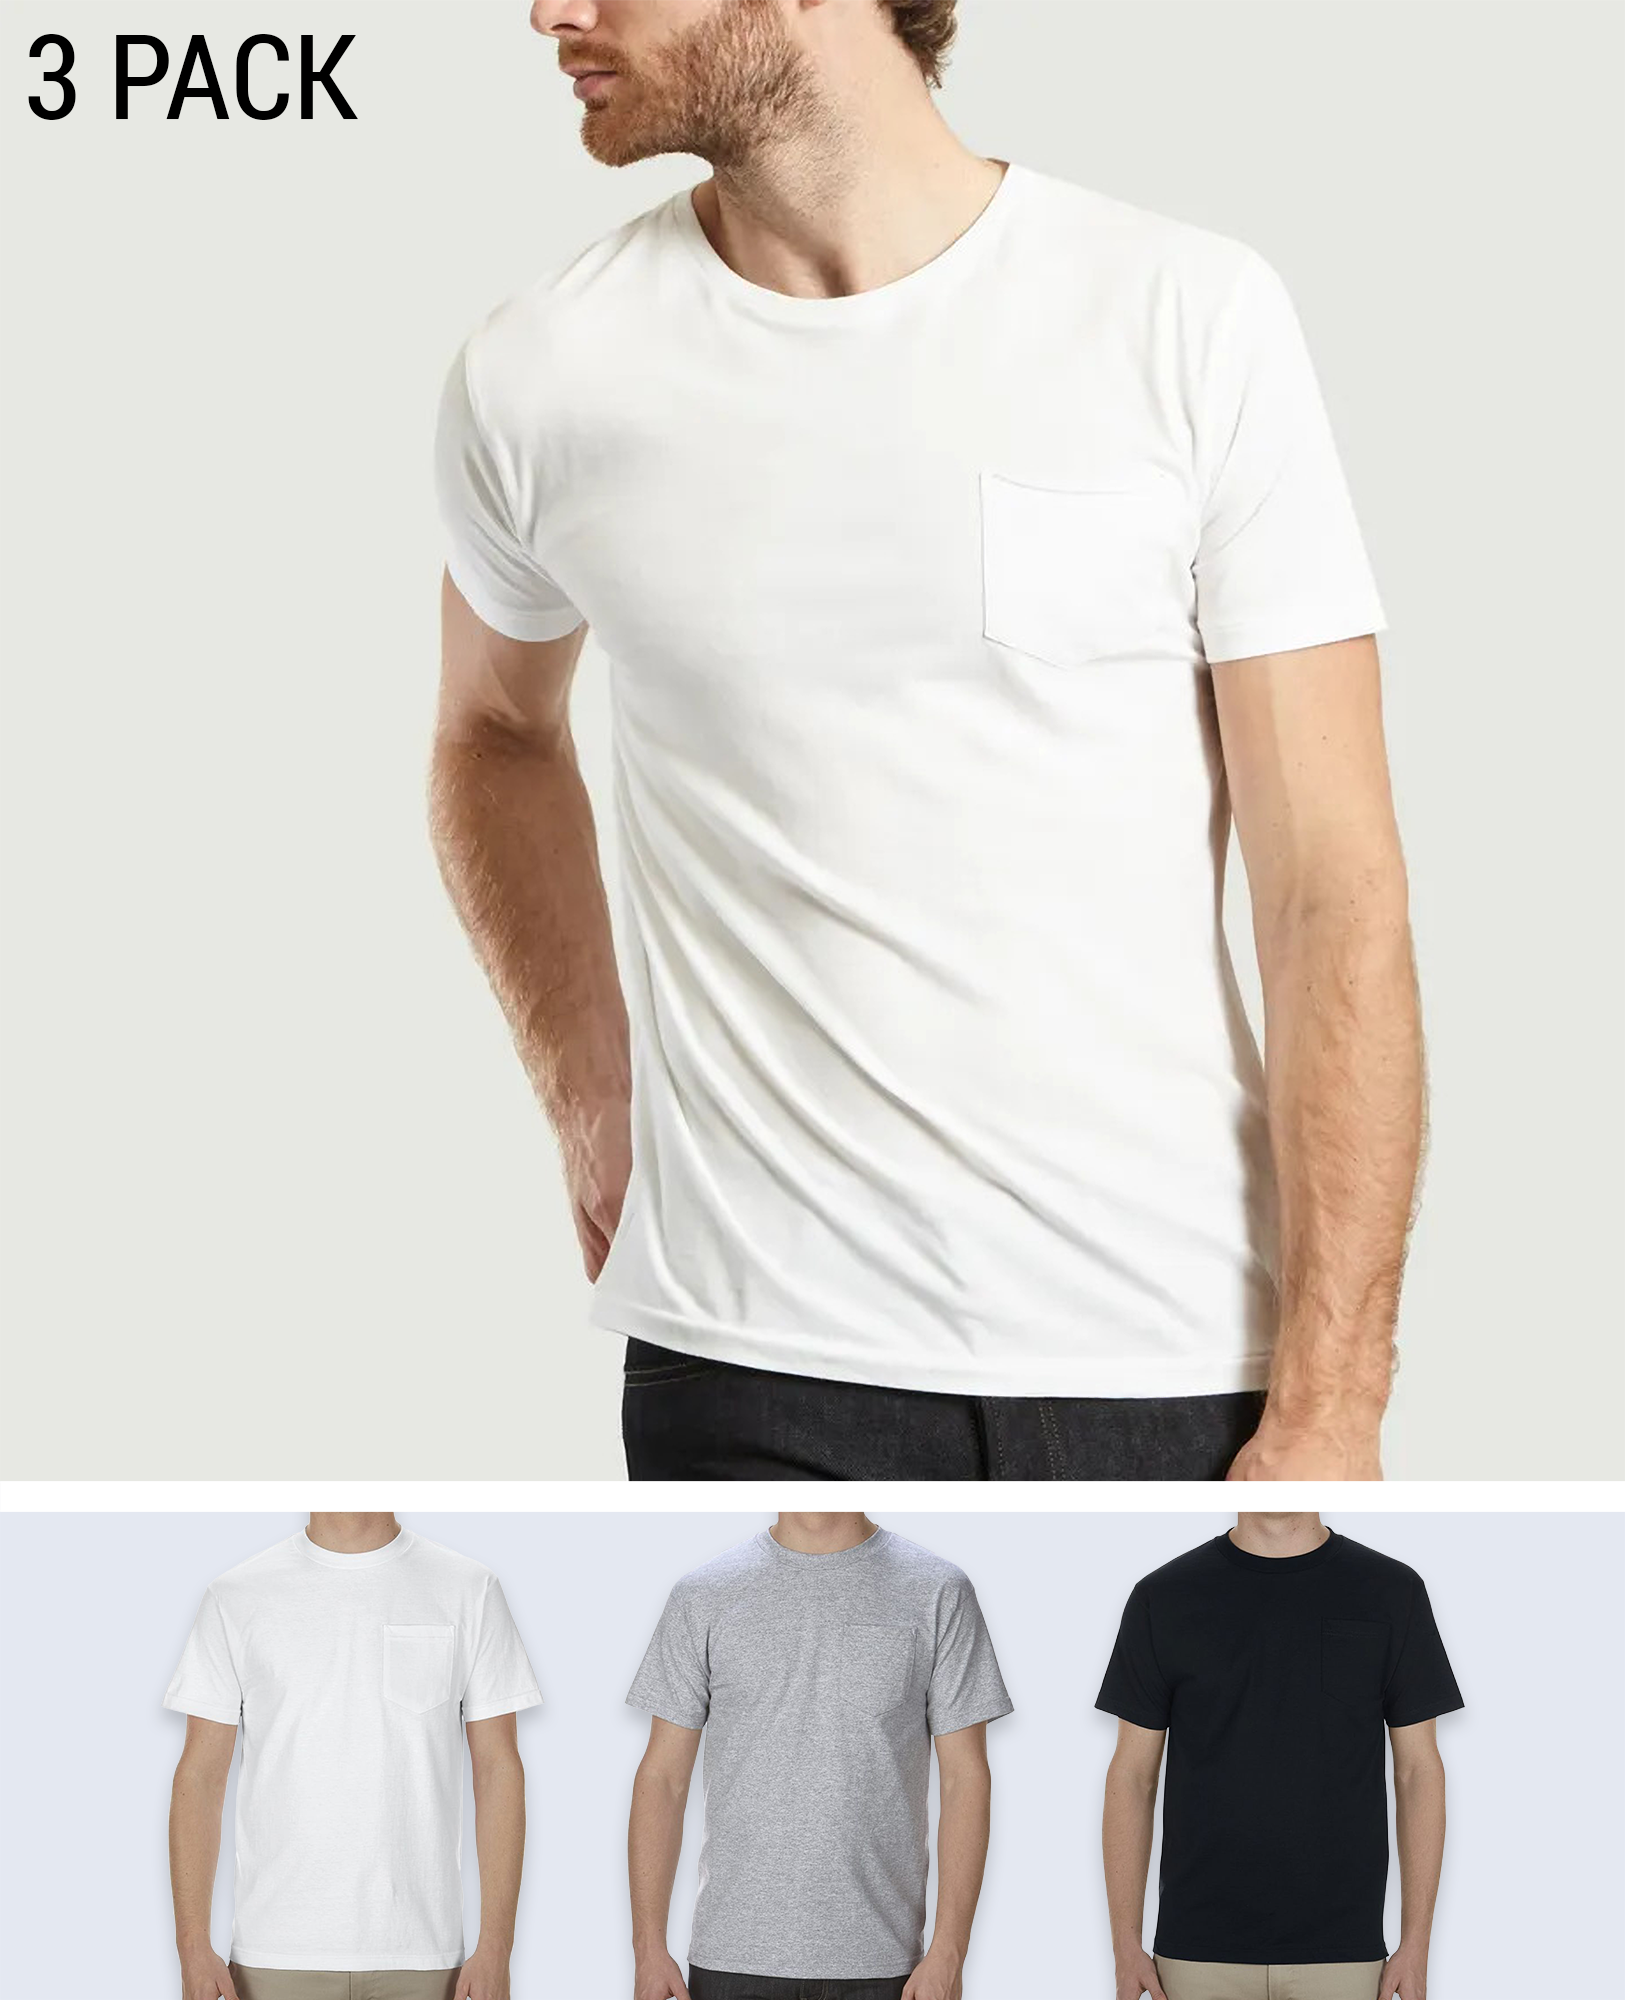 3 pack Pocket T-shirt - T-Shirts - Alstyle (AAA) - BRANMA